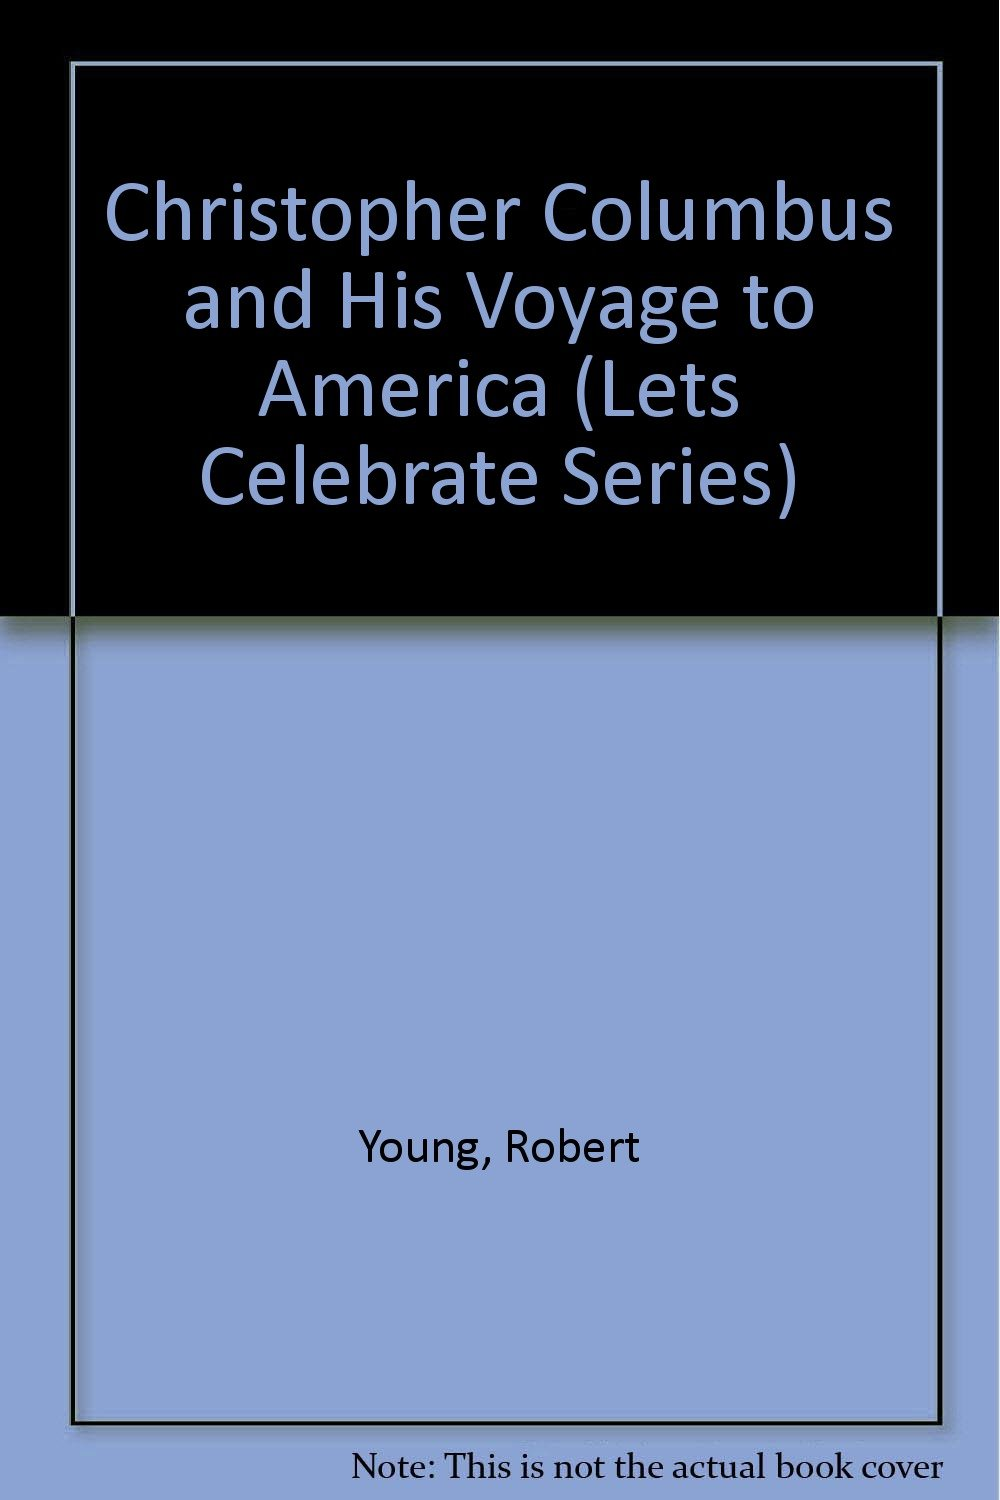 Christopher Columbus and His Voyage to America (Lets Celebrate Series)